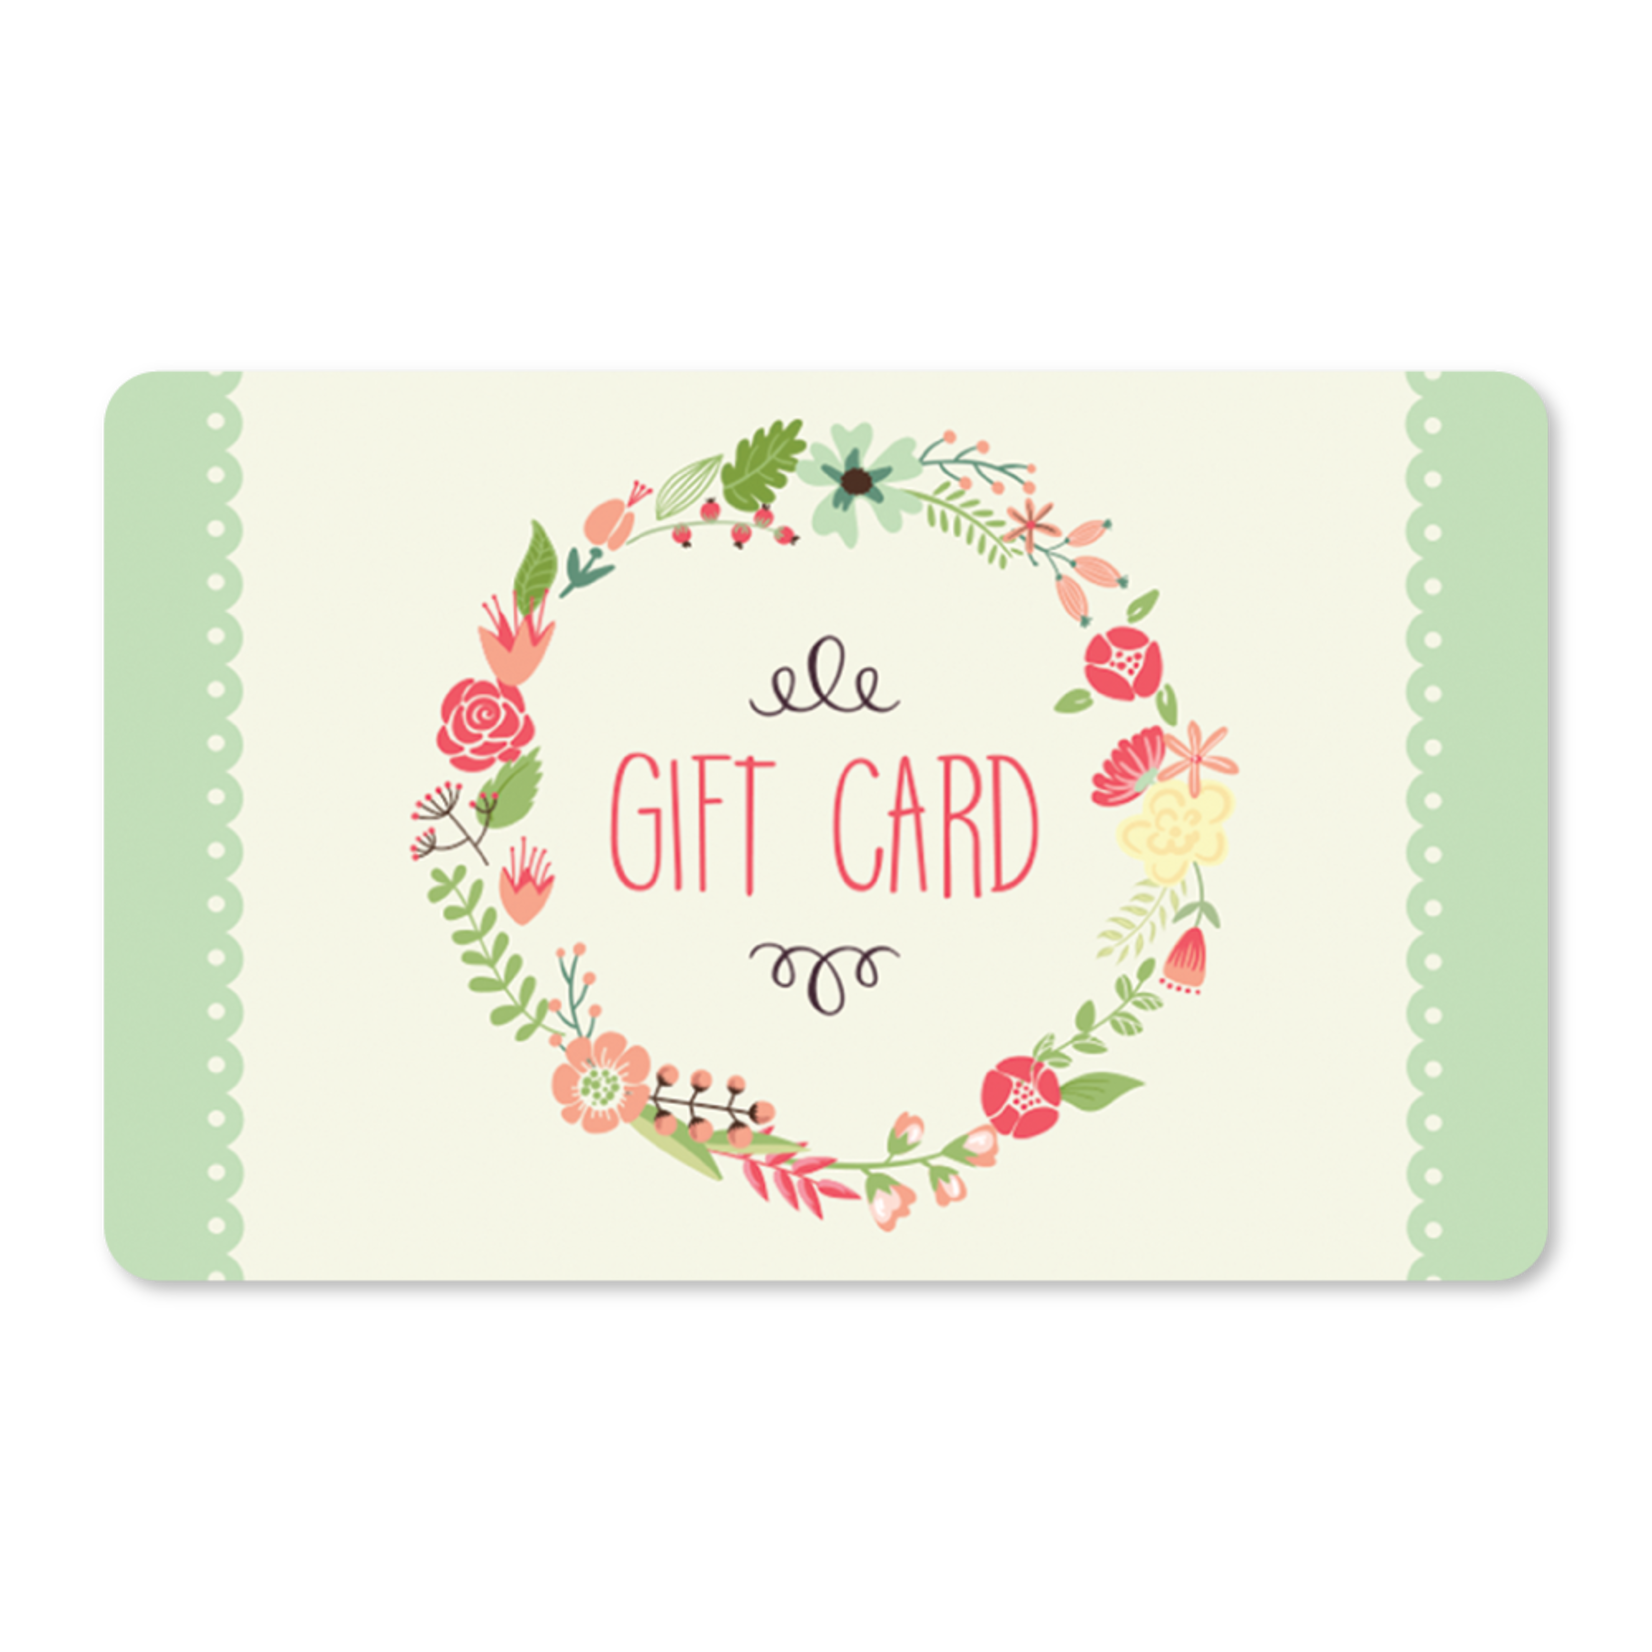 Gift Cards - Floral Wreath